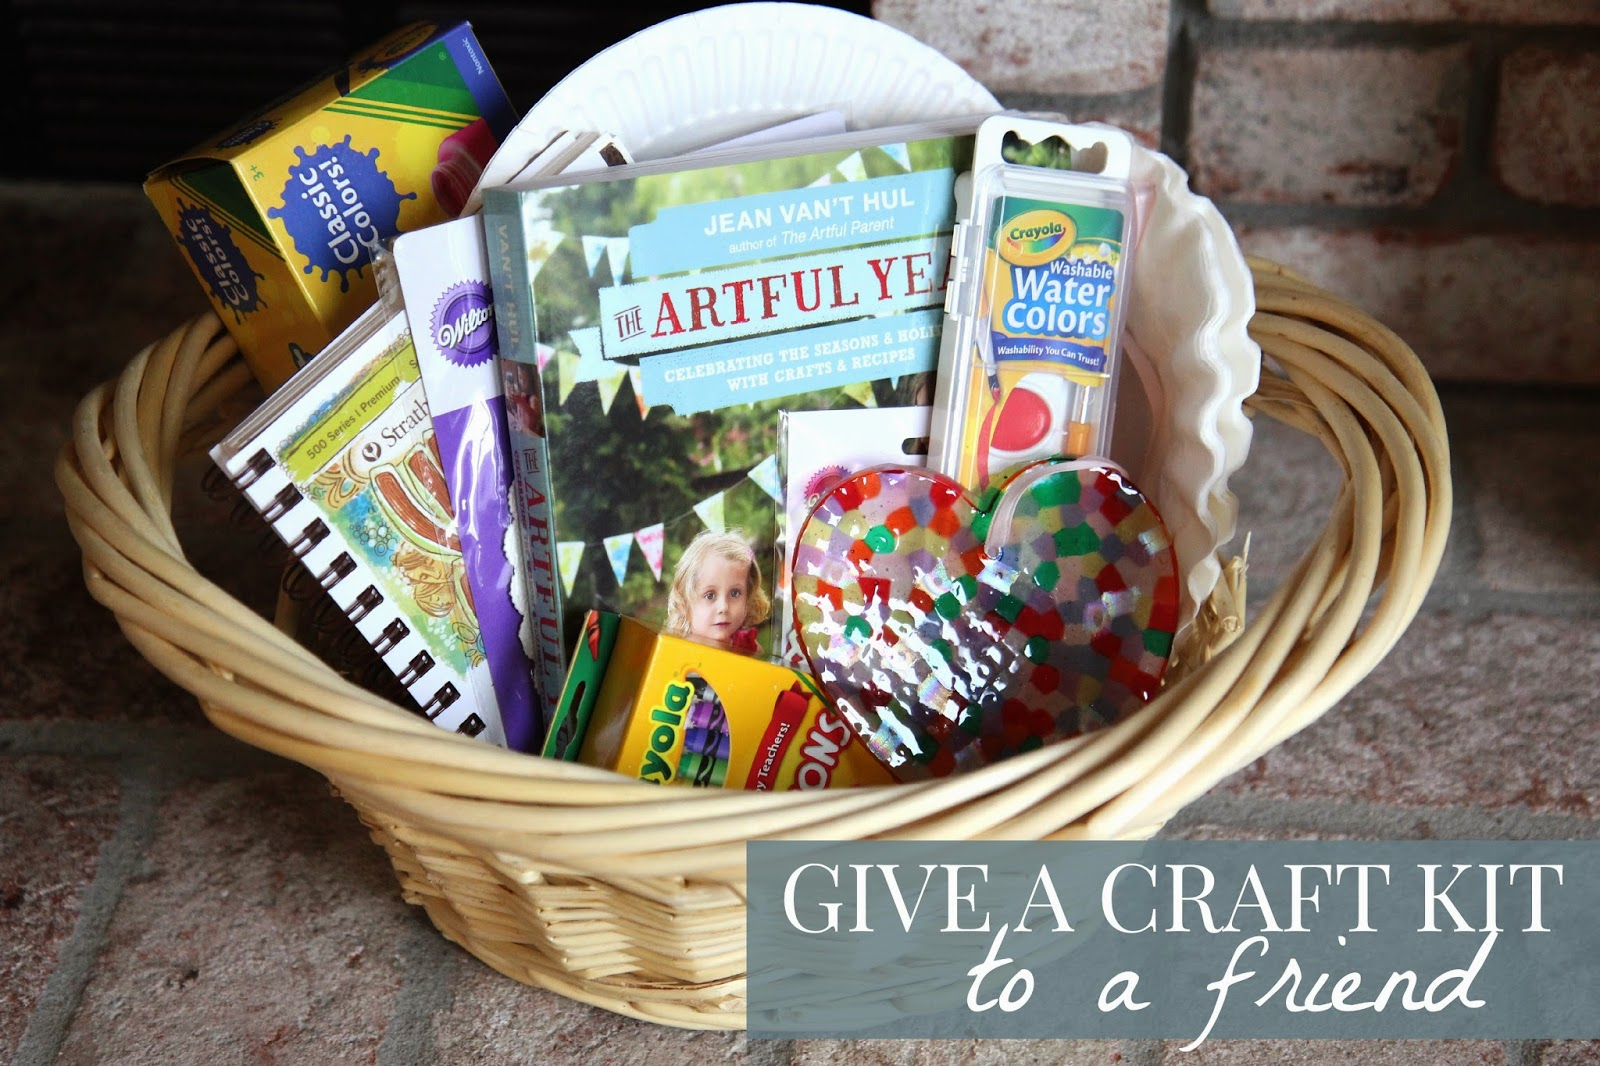 Craft kits for preschoolers - Creative Diy Activity Kits For Kids From Fun At Home With Kids